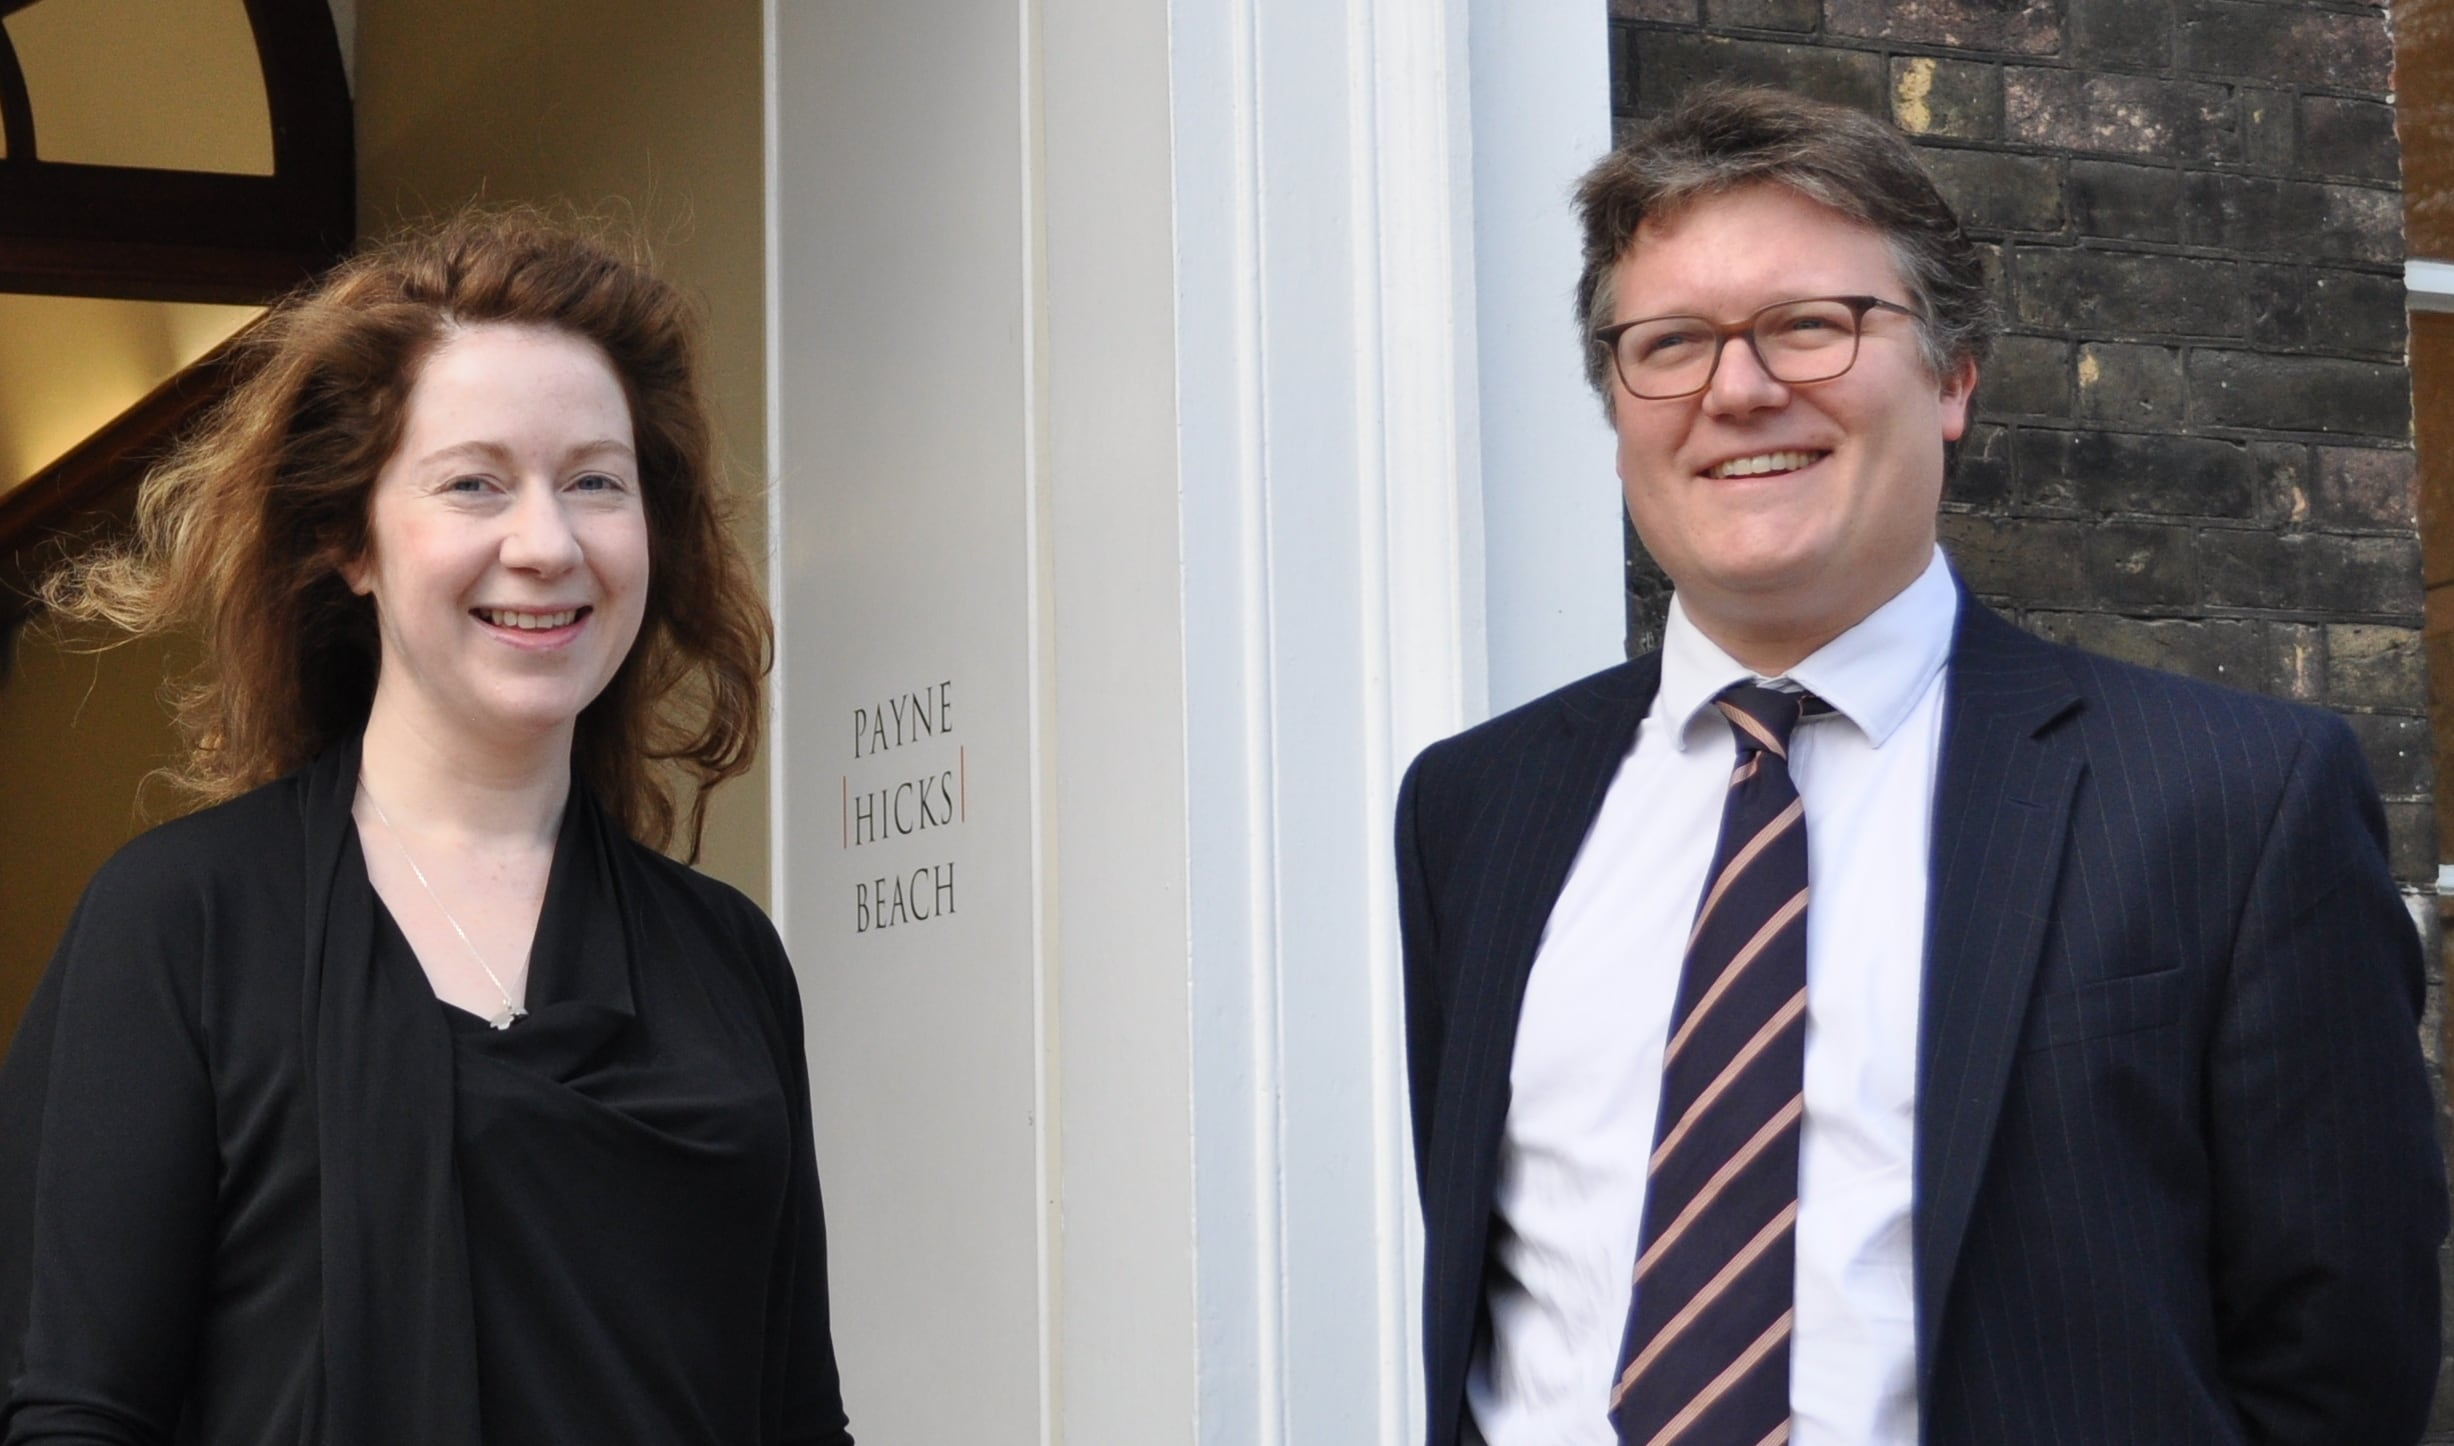 Payne Hicks Beach further strengthens its Landed Estates and Agriculture Team